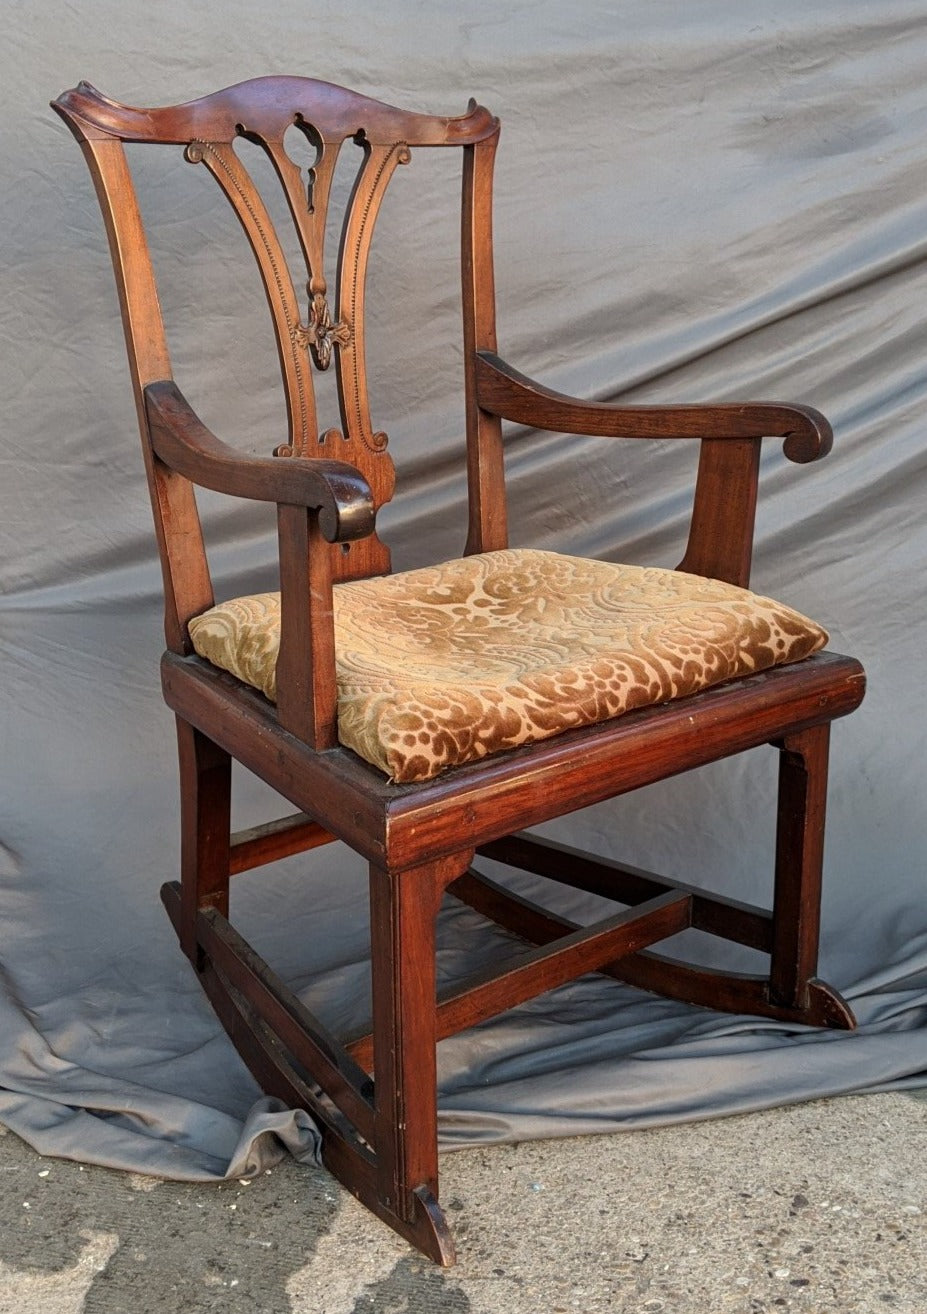 ENGLISH GEORGIAN PERIOD ROCKER